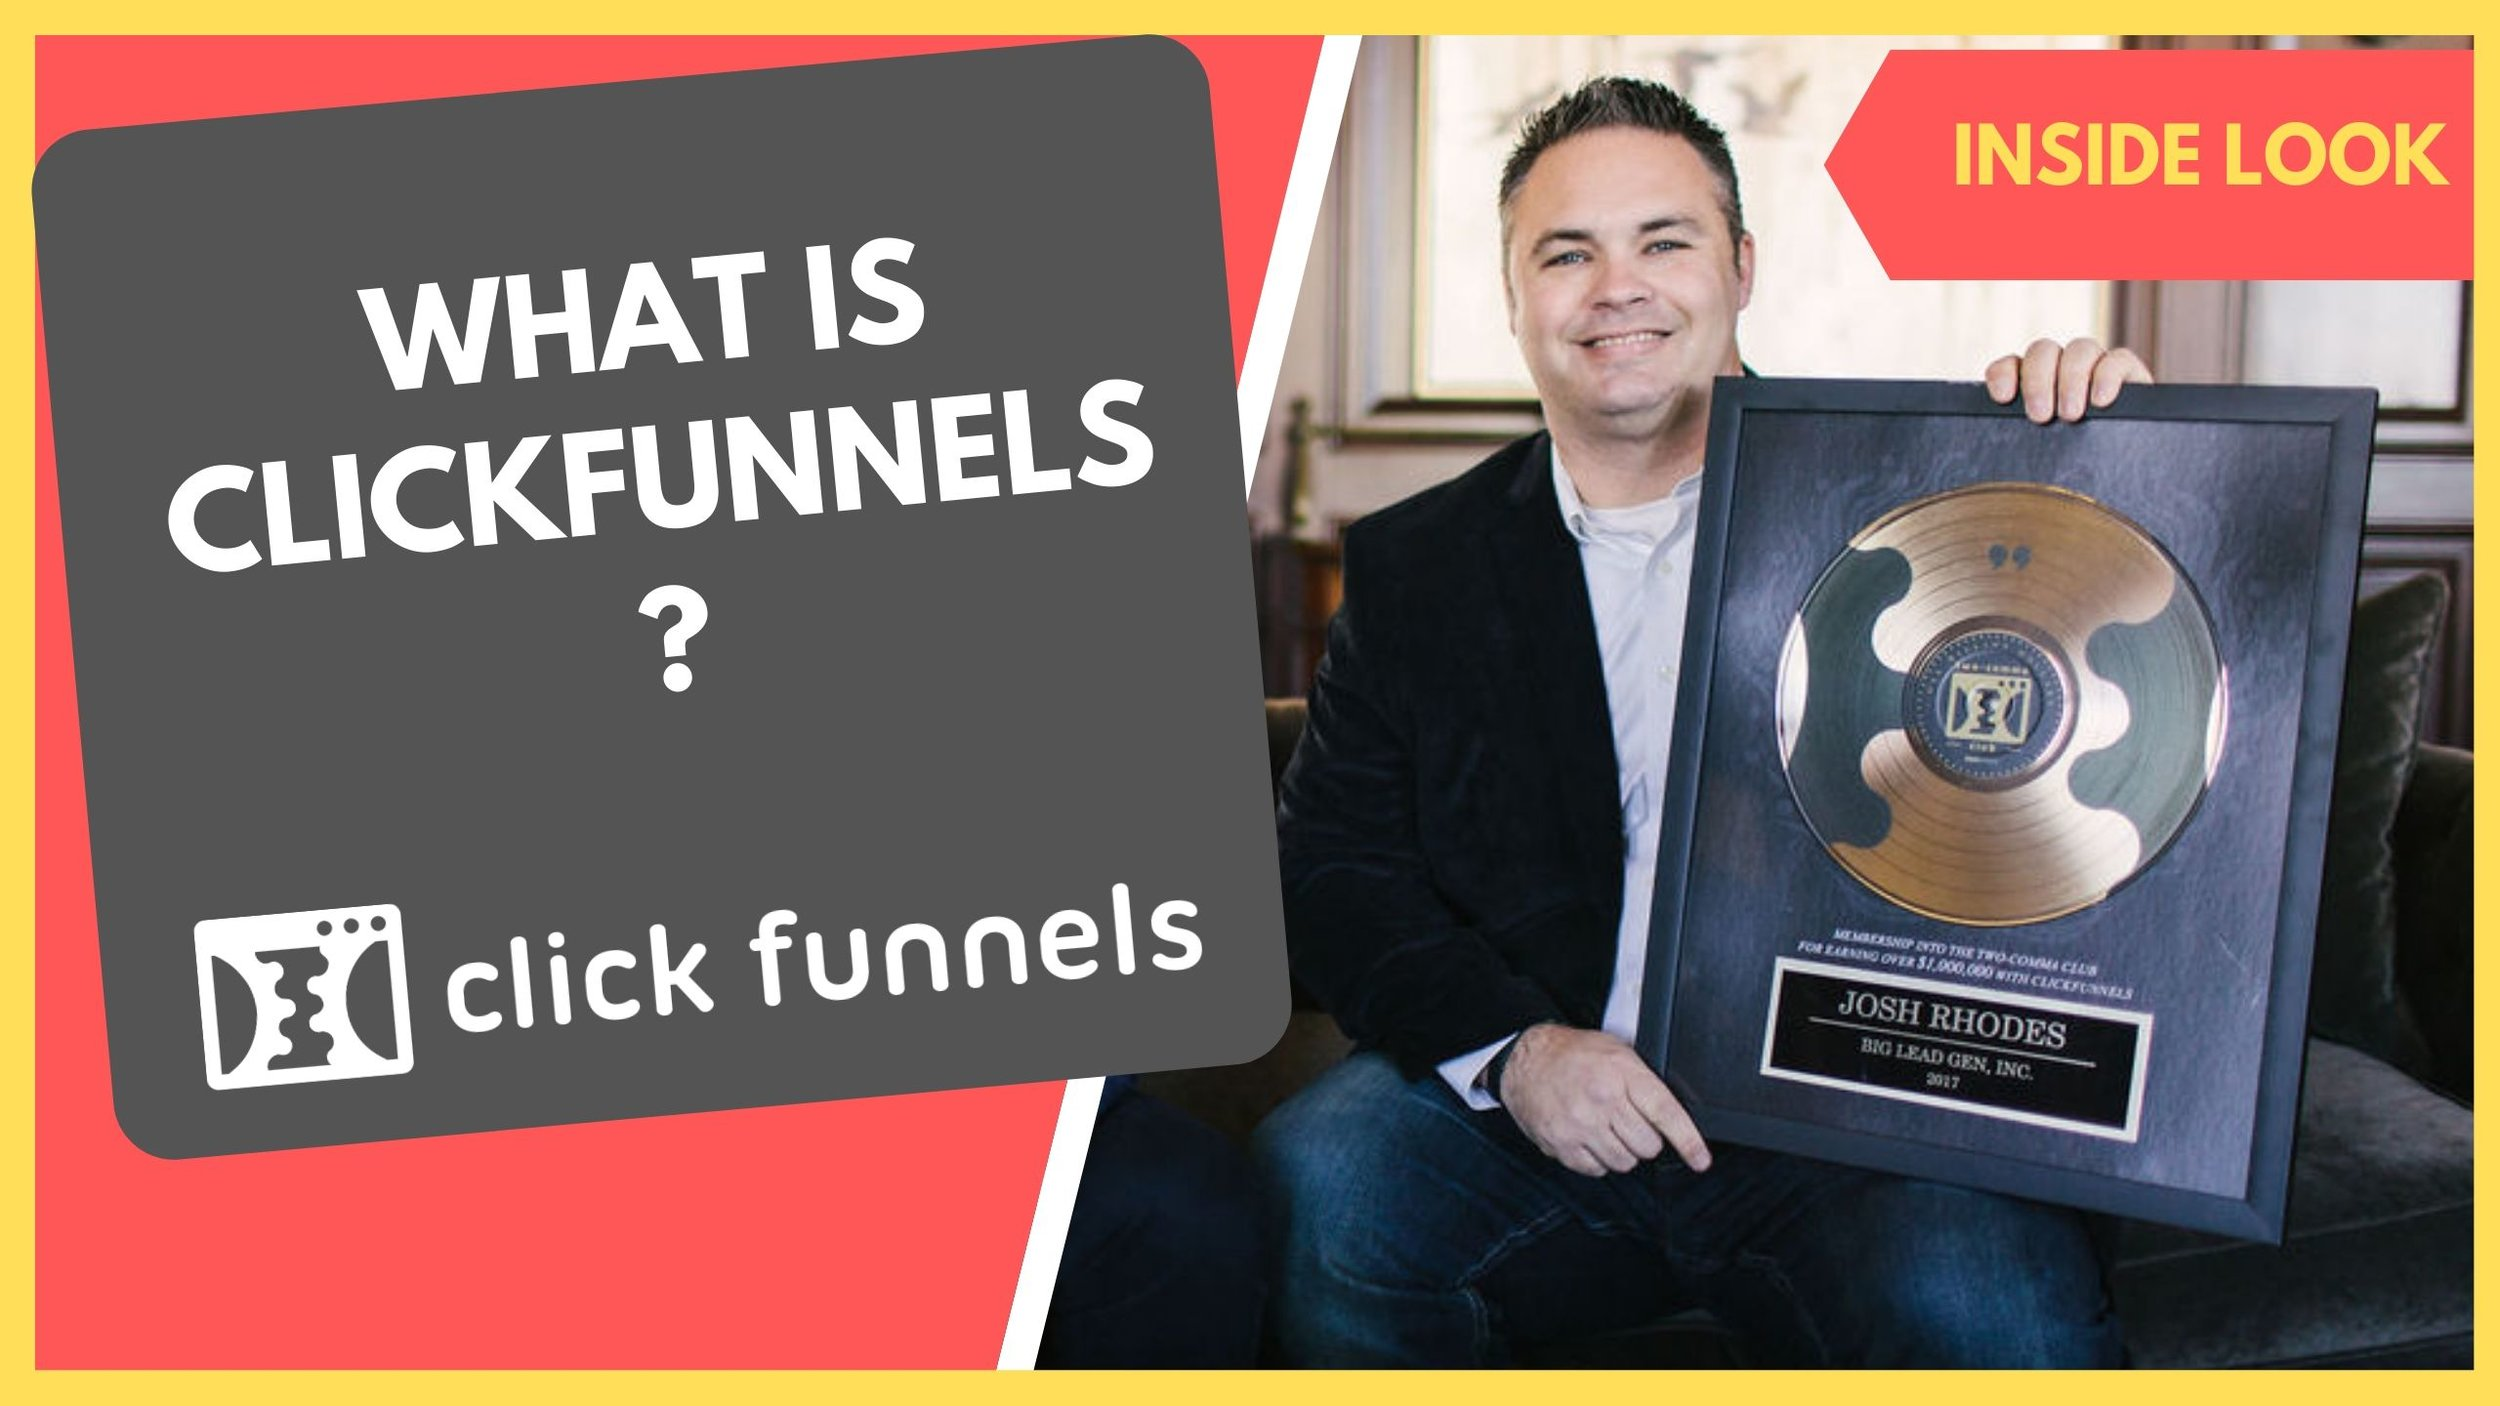 How Much Does Clickfunnels Make A Month?